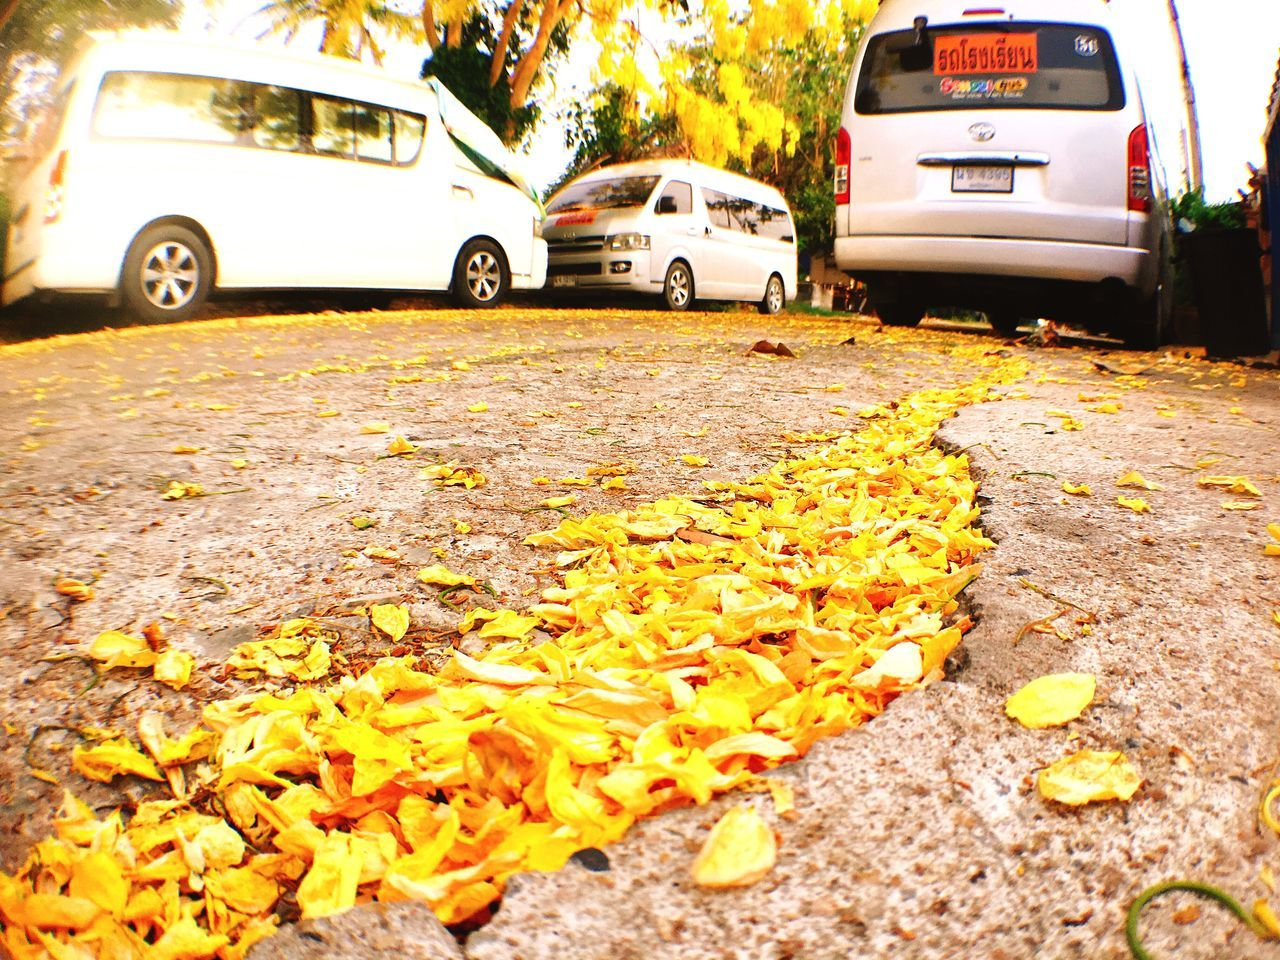 car, land vehicle, transportation, leaf, mode of transport, autumn, change, street, yellow, day, stationary, outdoors, no people, road, nature, fragility, close-up